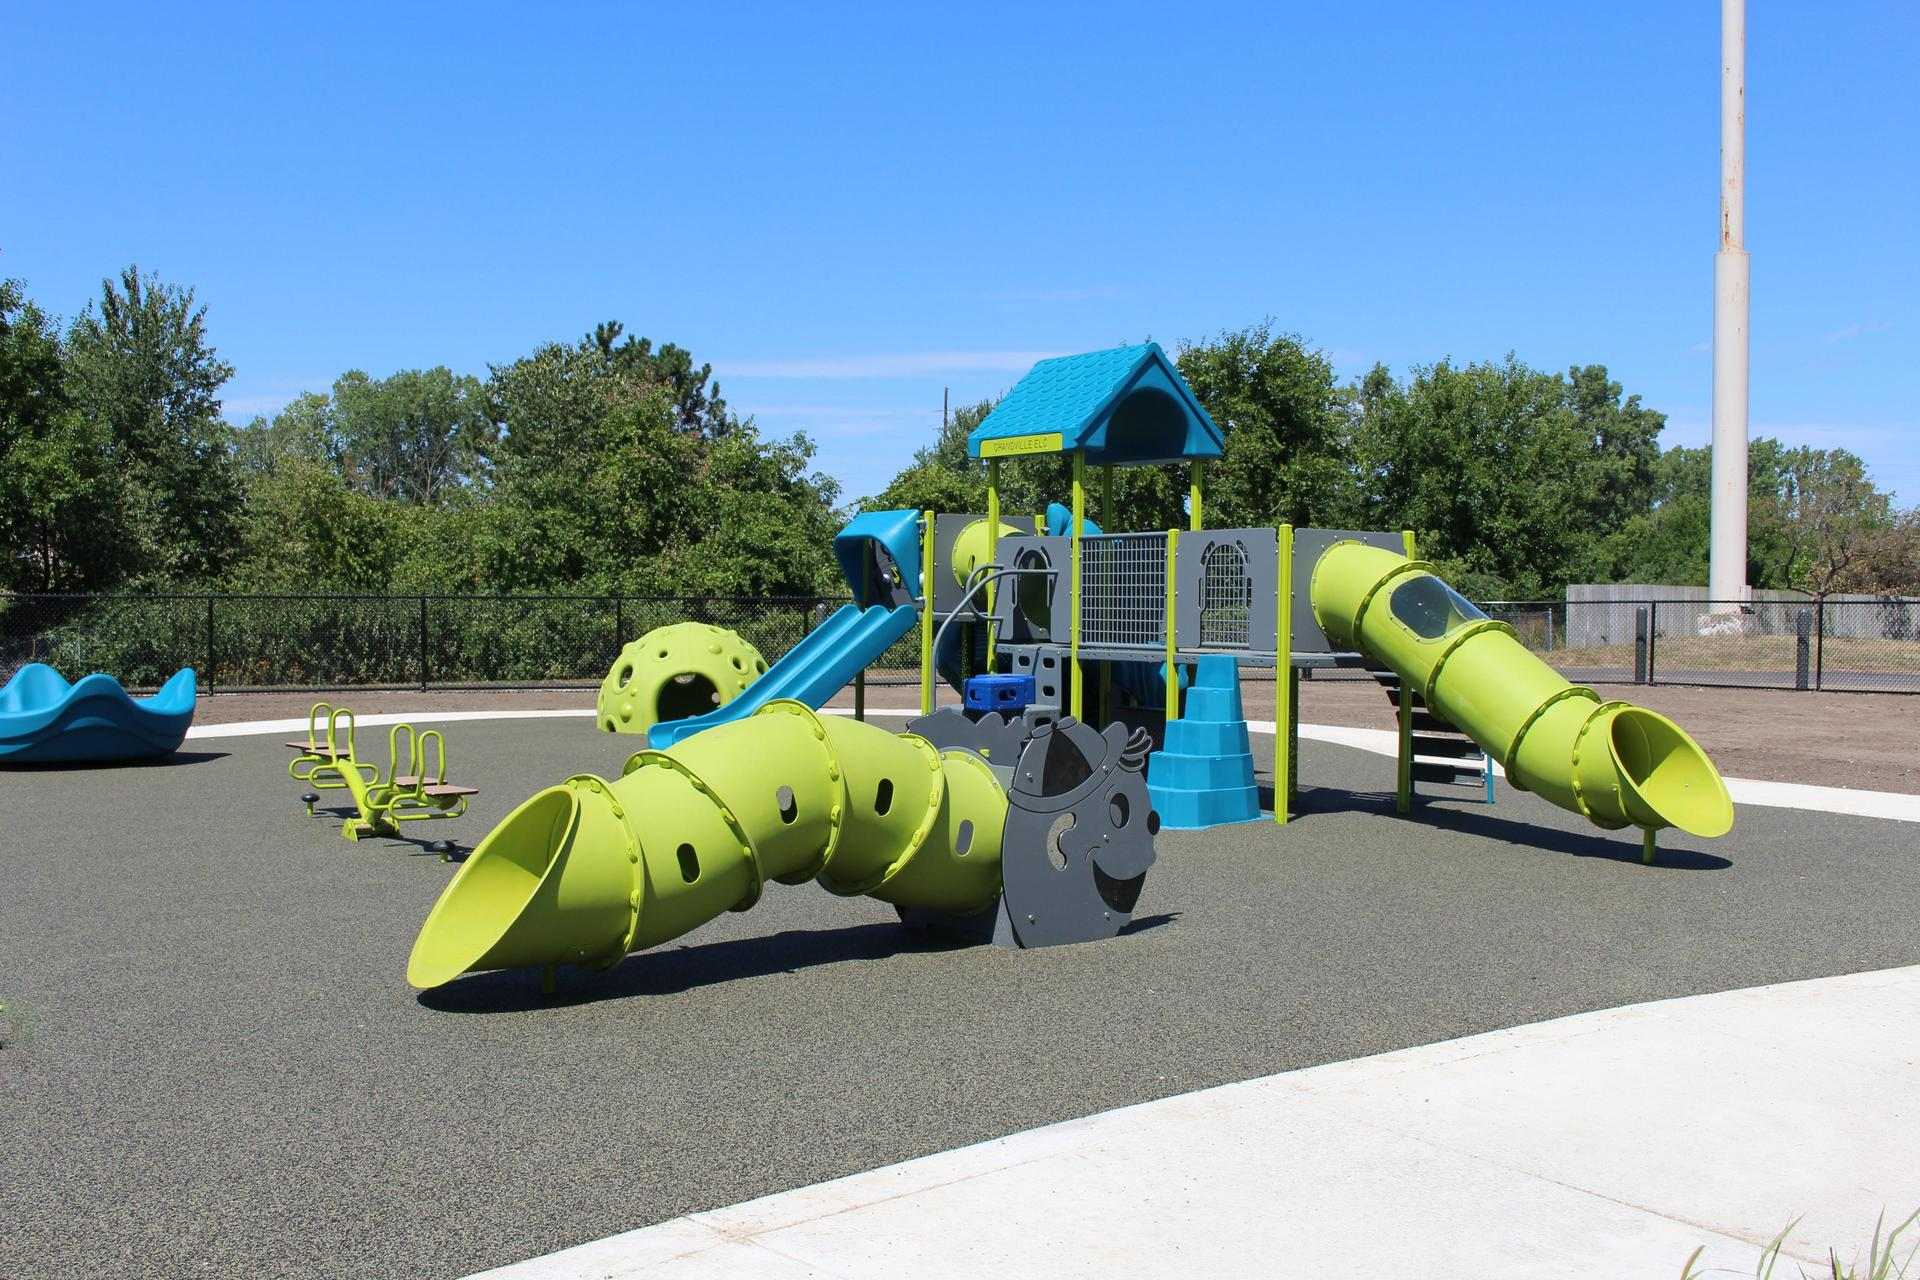 playground with equipment for youngsters